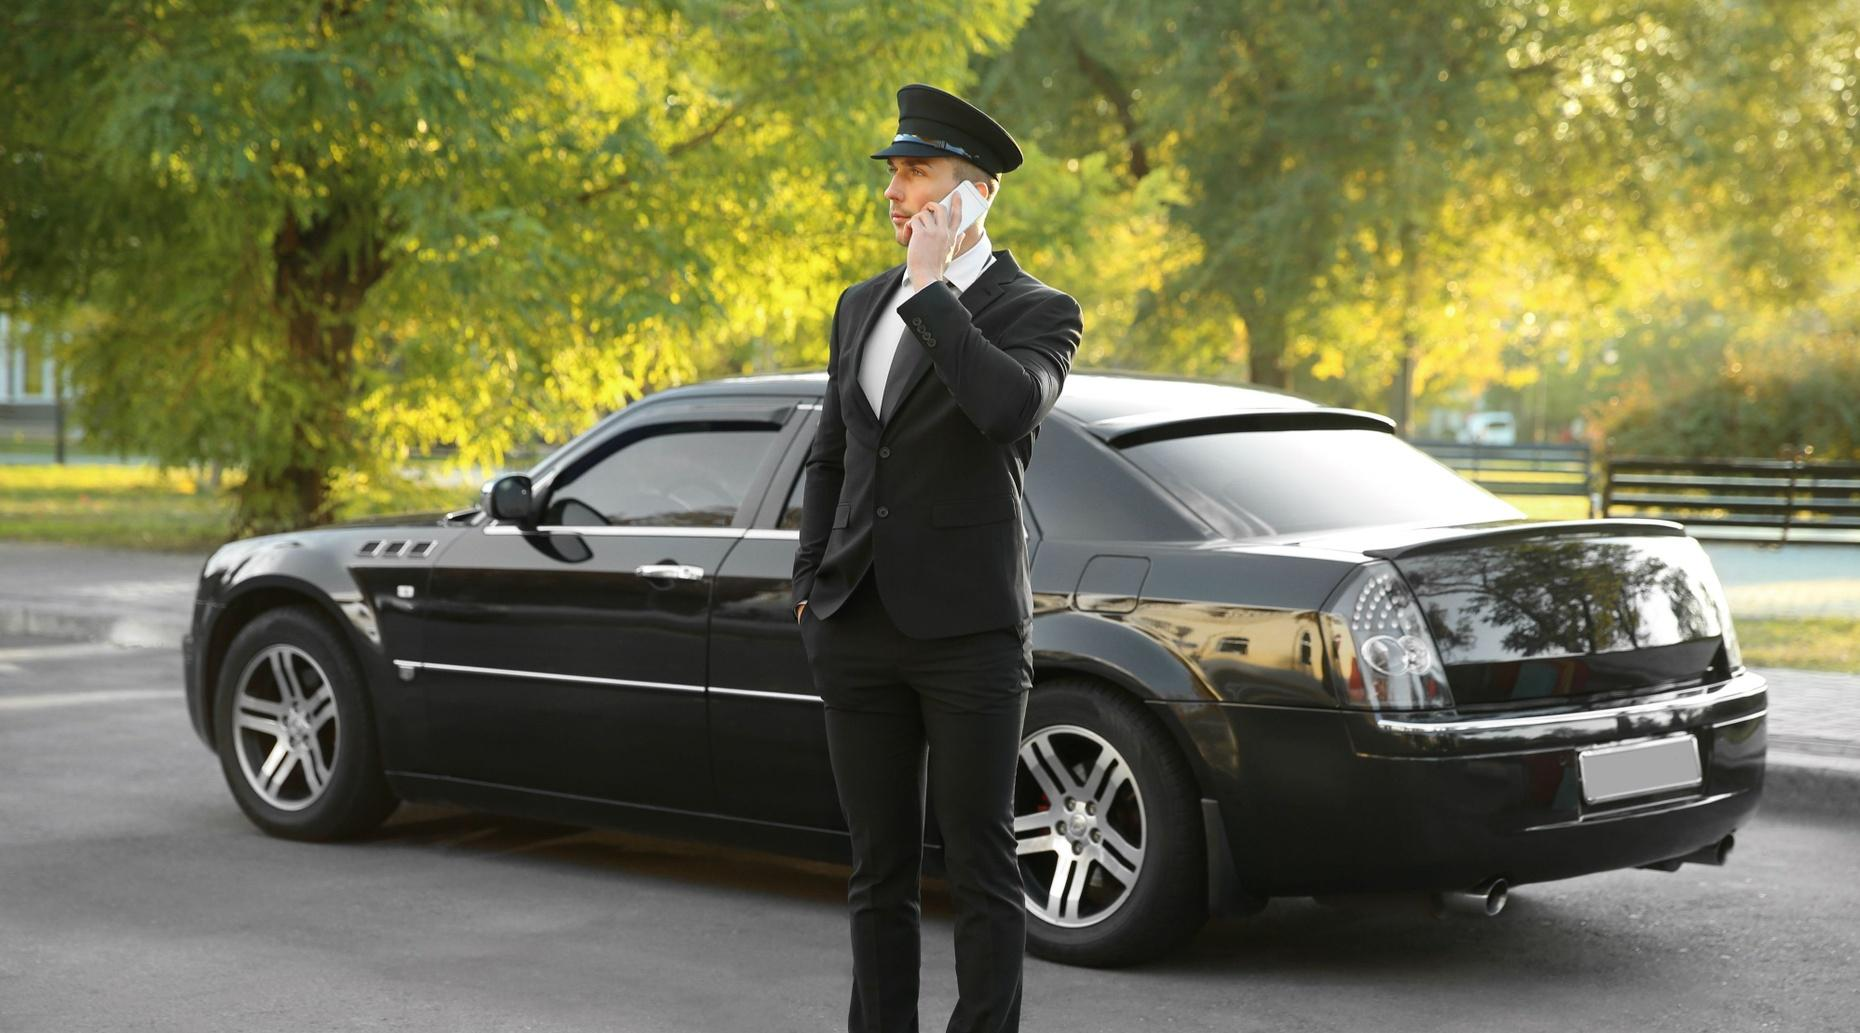 Local Limousine Transfer in Temecula